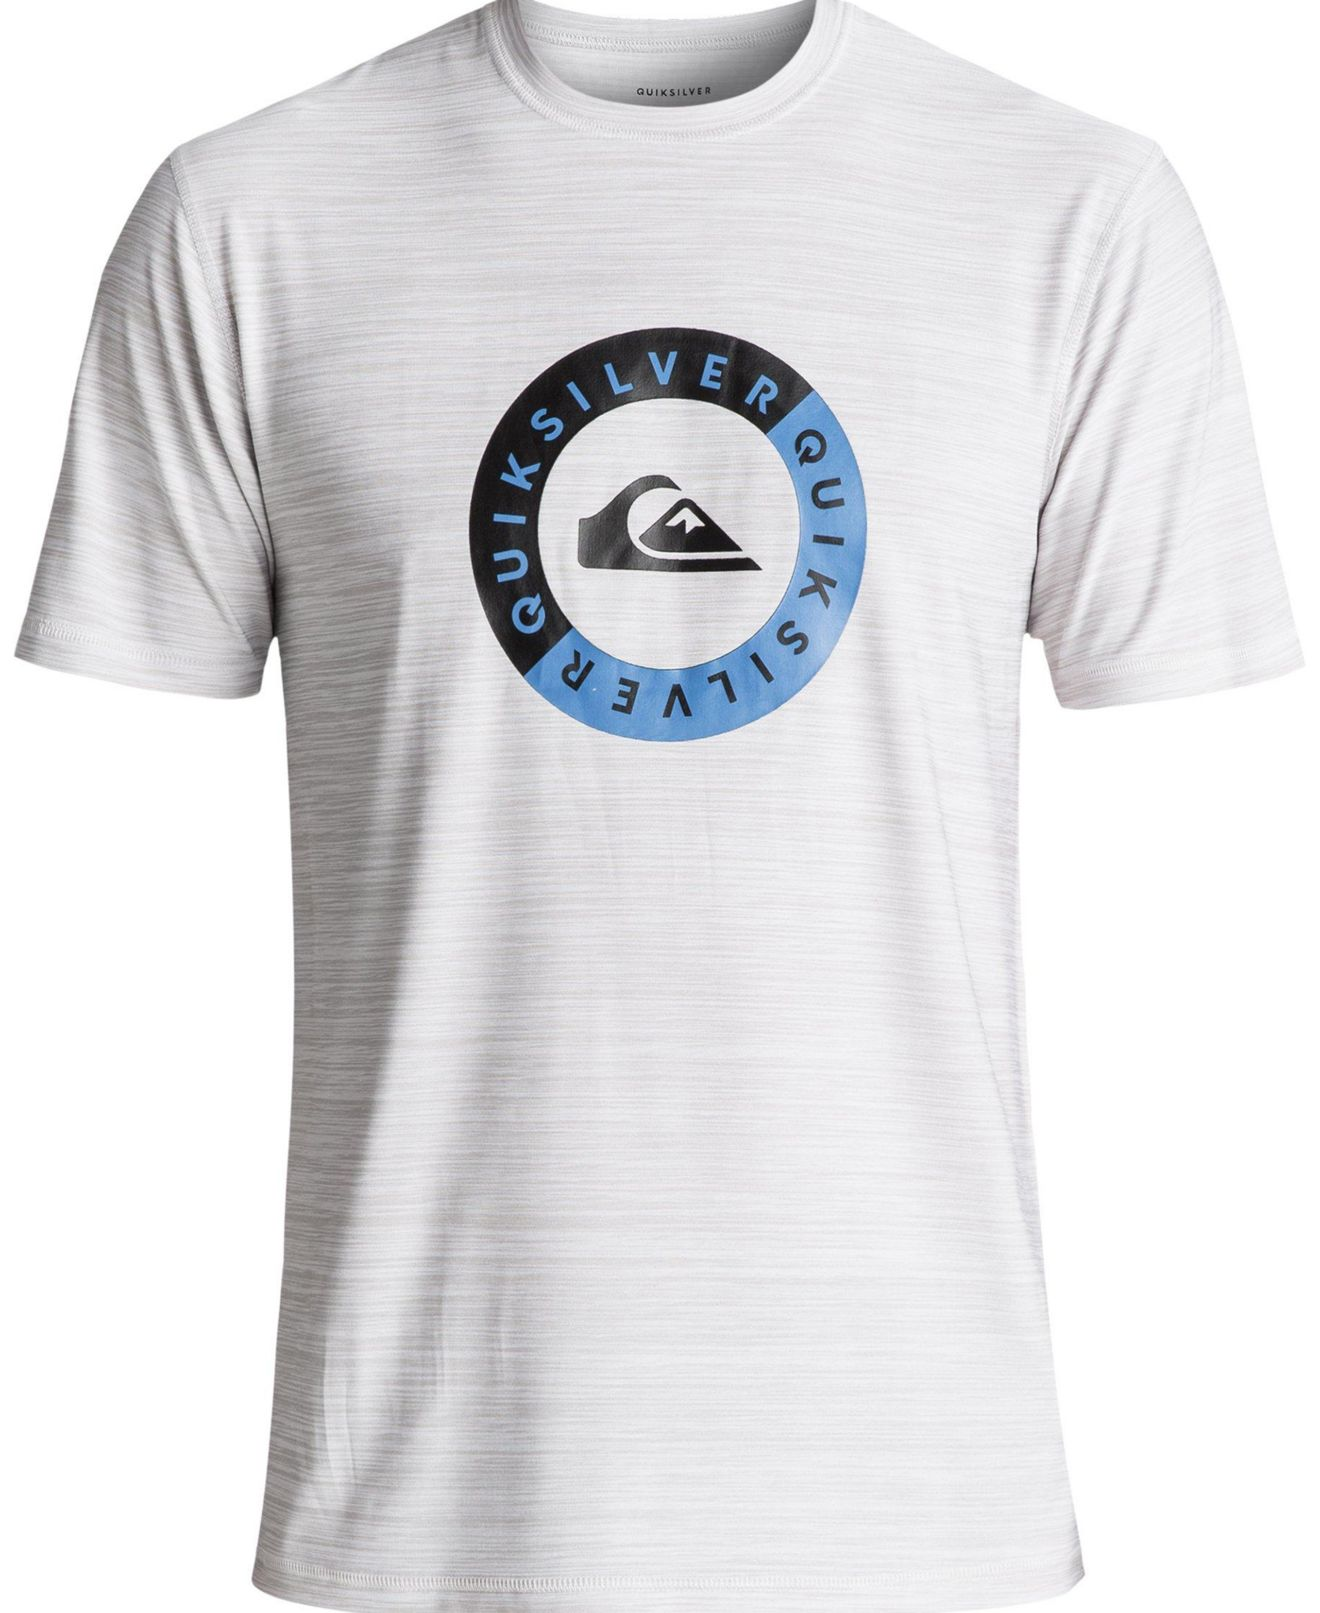 New-Quiksilver-Mens-Gray-Blue-Size-Large-L-Graphic-Crewneck-Tee-T-Shirt-30-232